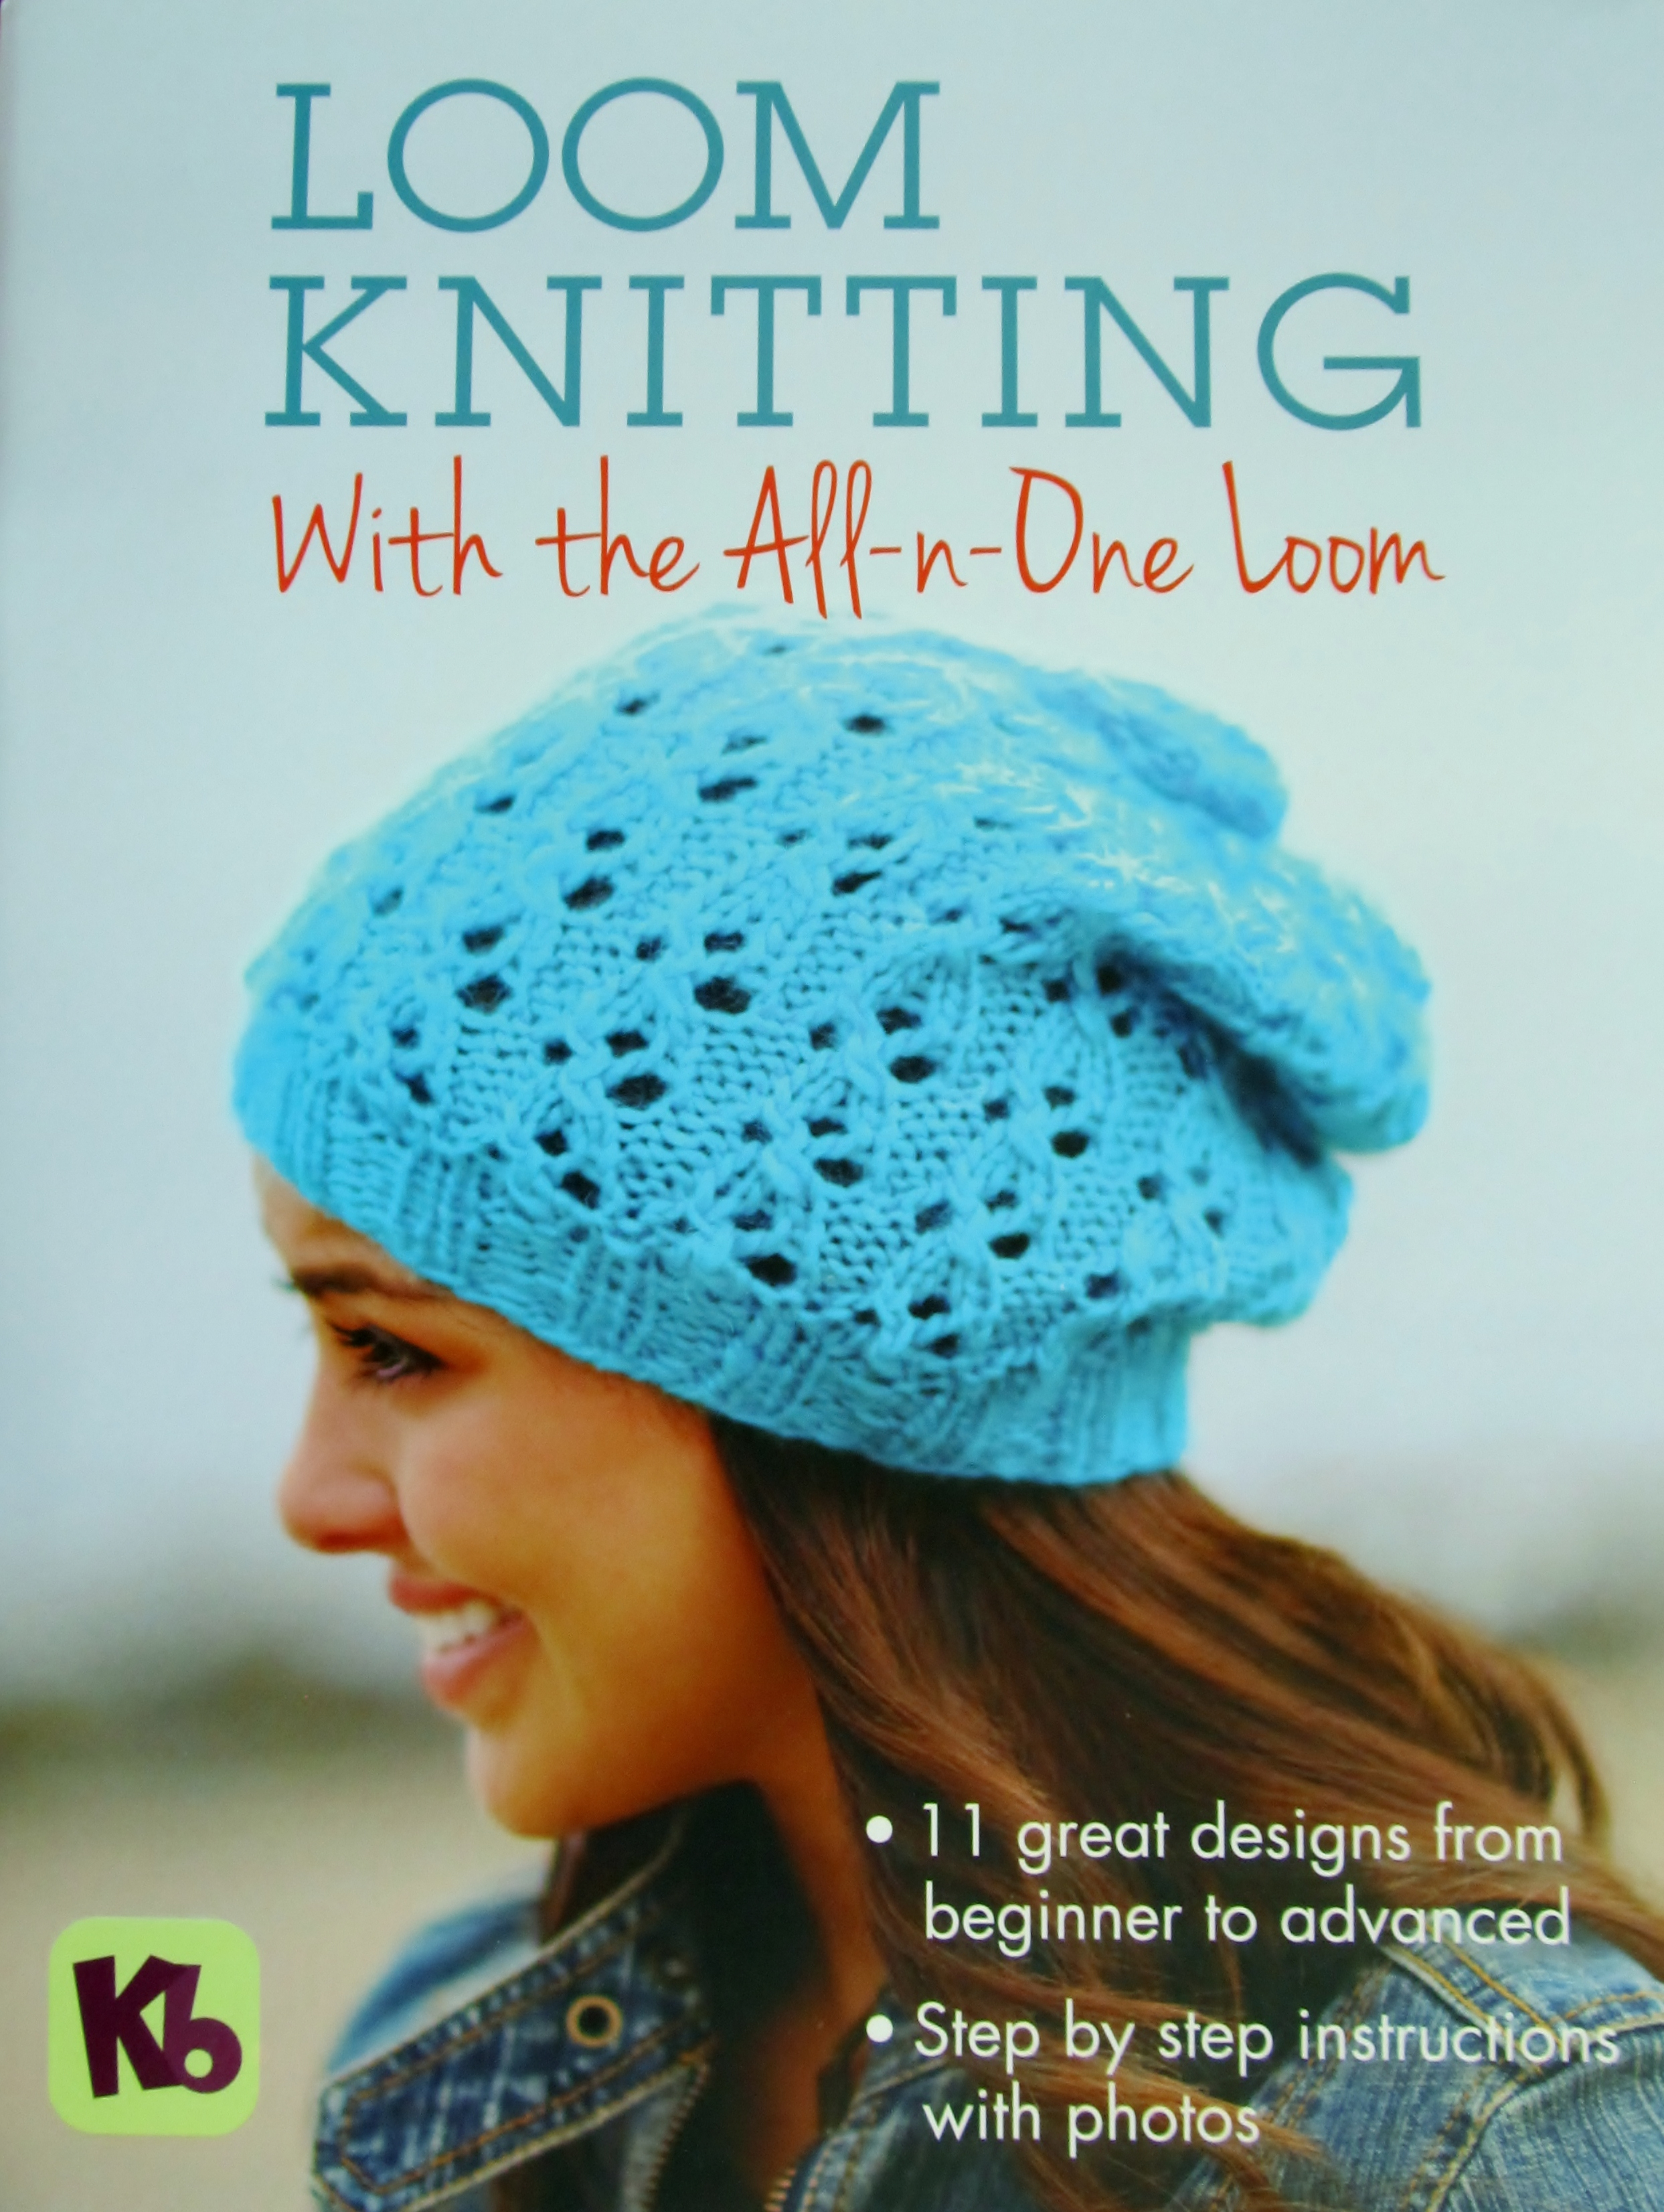 Round Loom Knitting Patterns Download Loom Knitting With The All N One Book Guppygirl